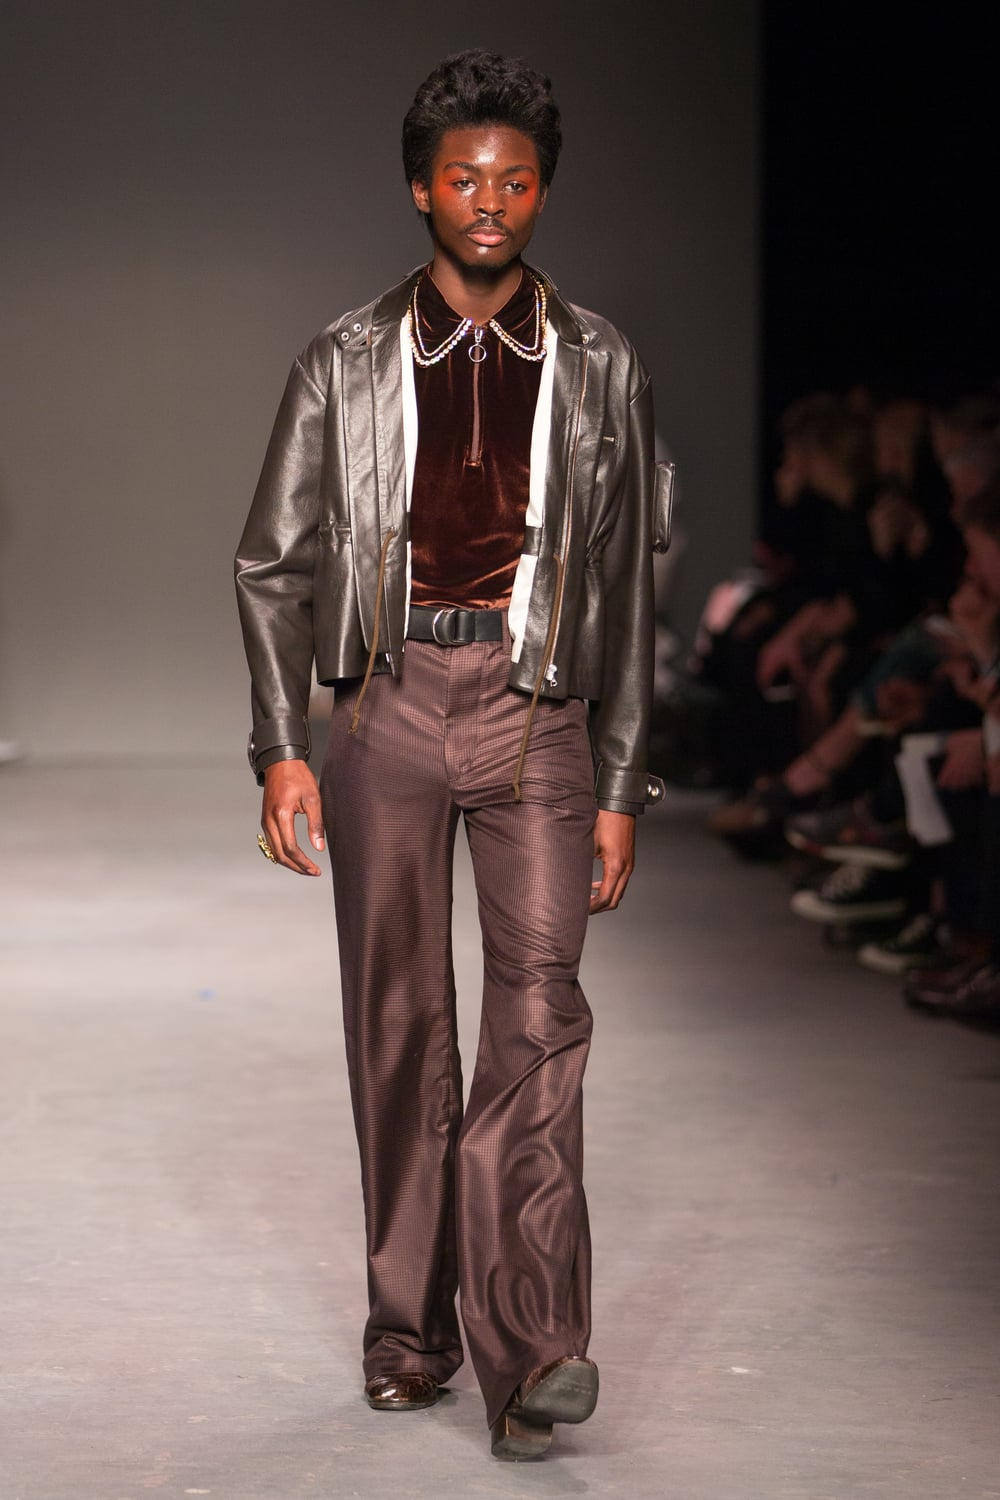 Wales Bonner at MAN AW16 Show, London Collections Men